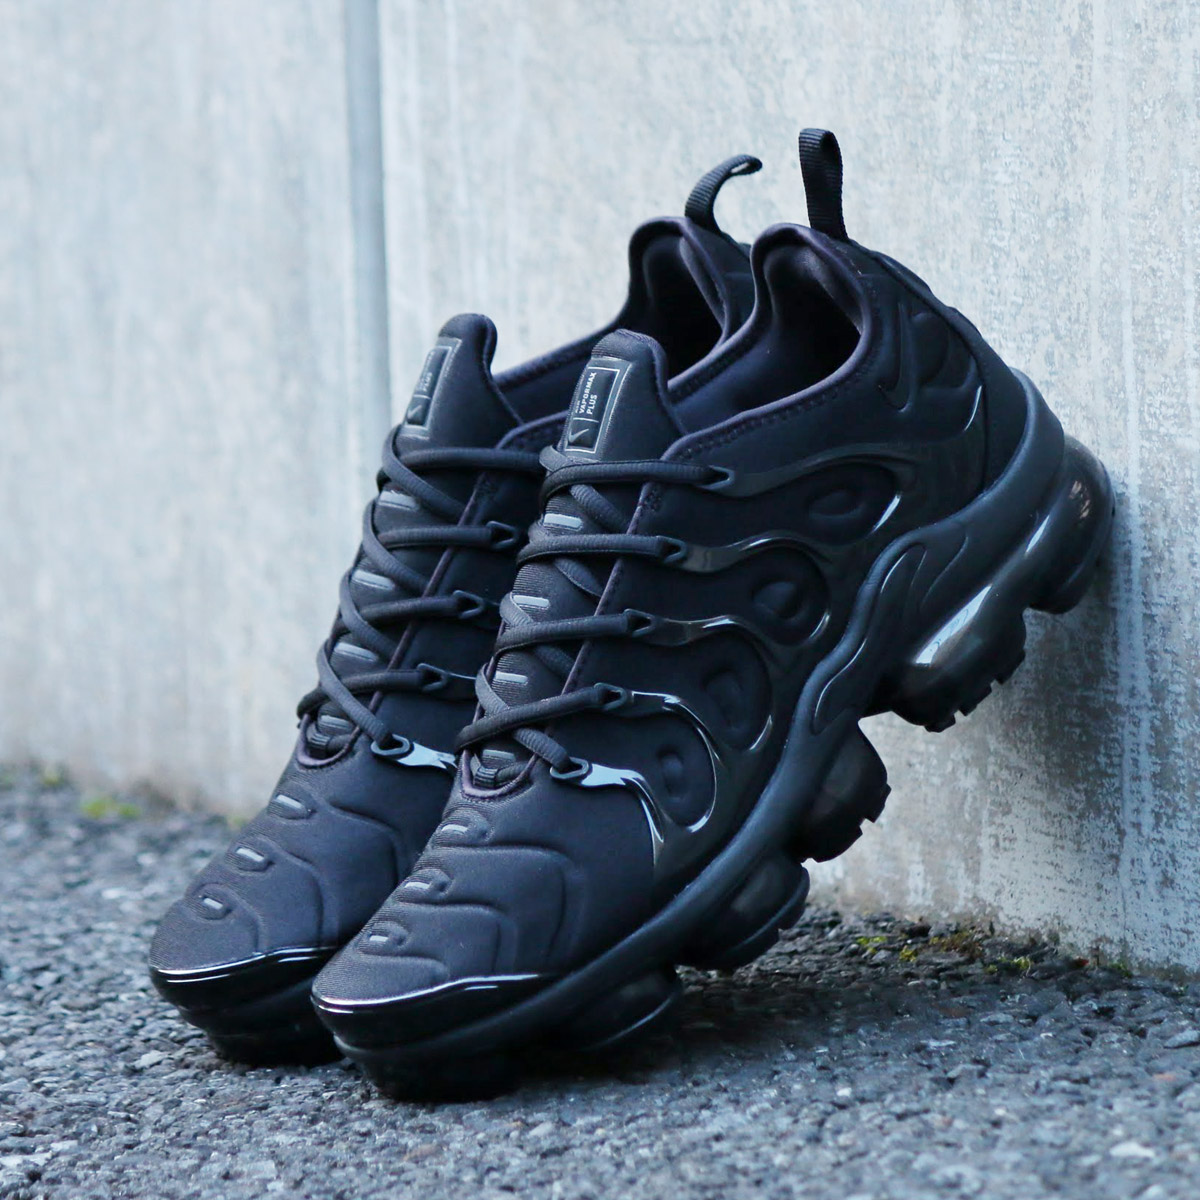 reputable site 6a1ae 7fe03 NIKE AIR VAPORMAX PLUS(耐克空气海湾标准打数最大加)(BLACK BLACK-DARK GREY)18SP-S